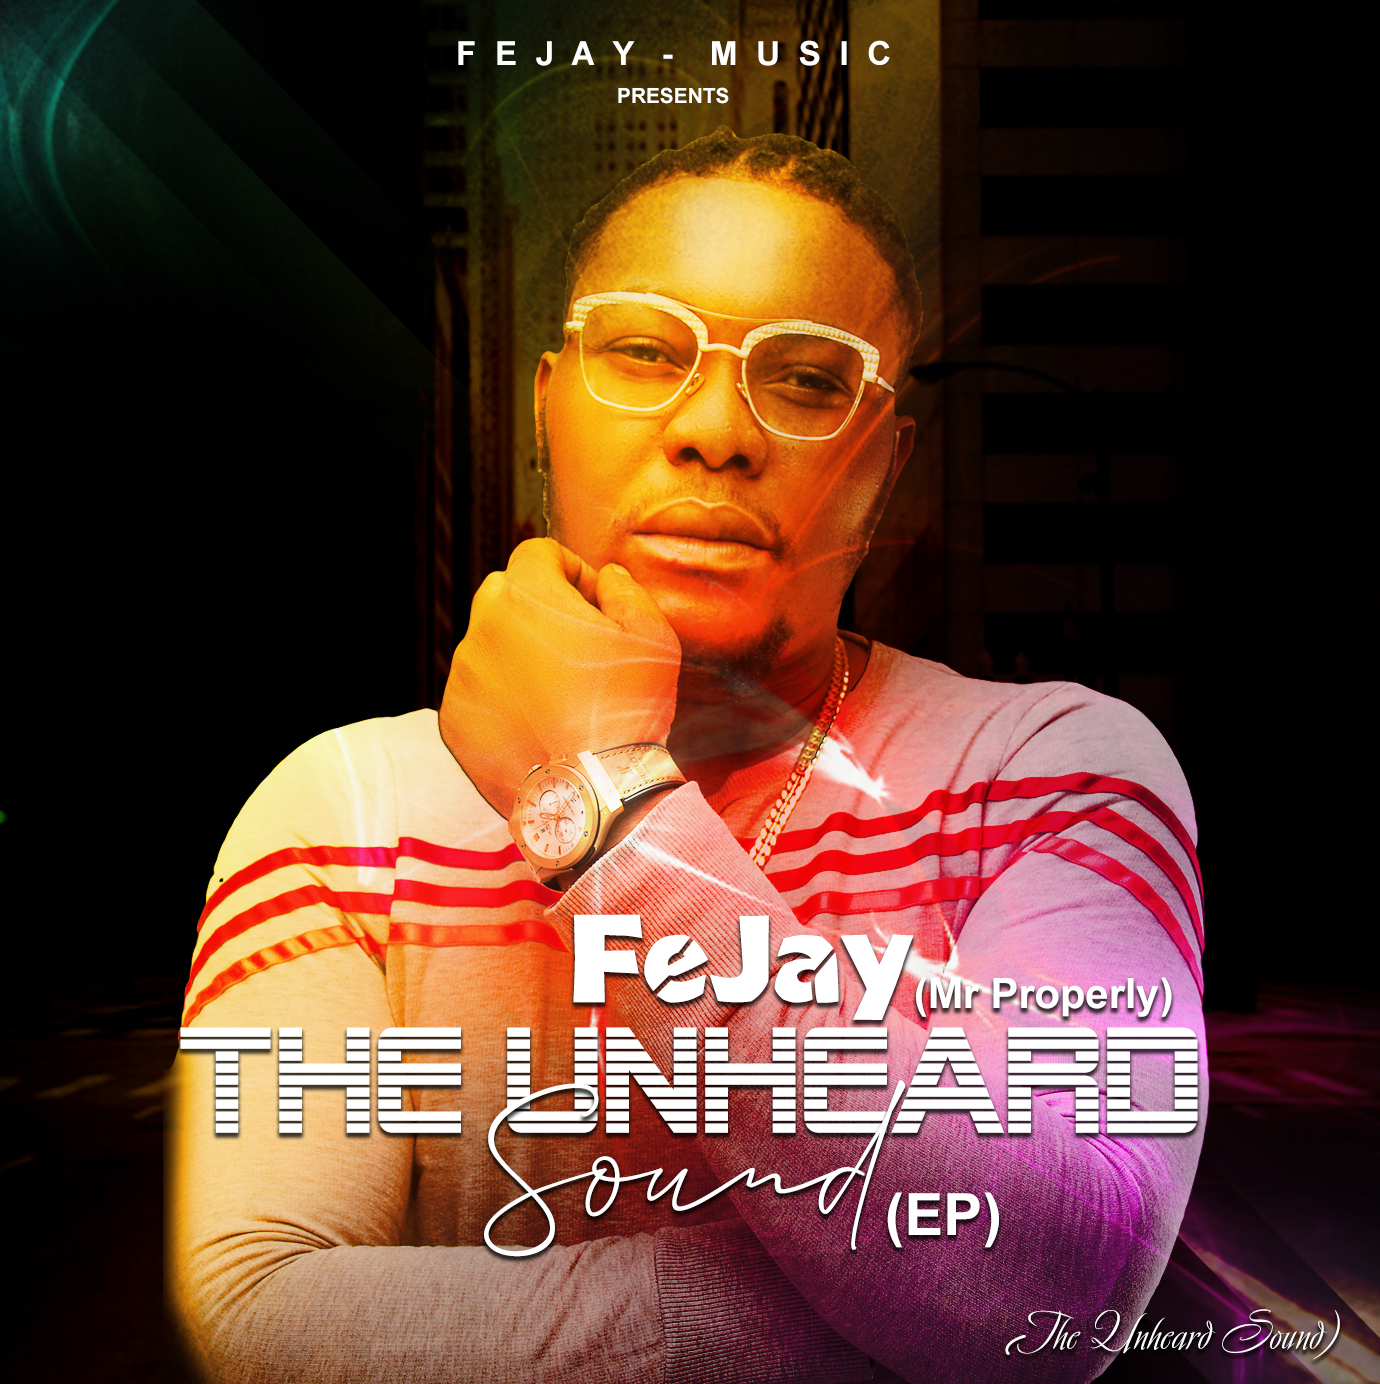 FeJay aims at dropping a new EP – The Unheard Sound